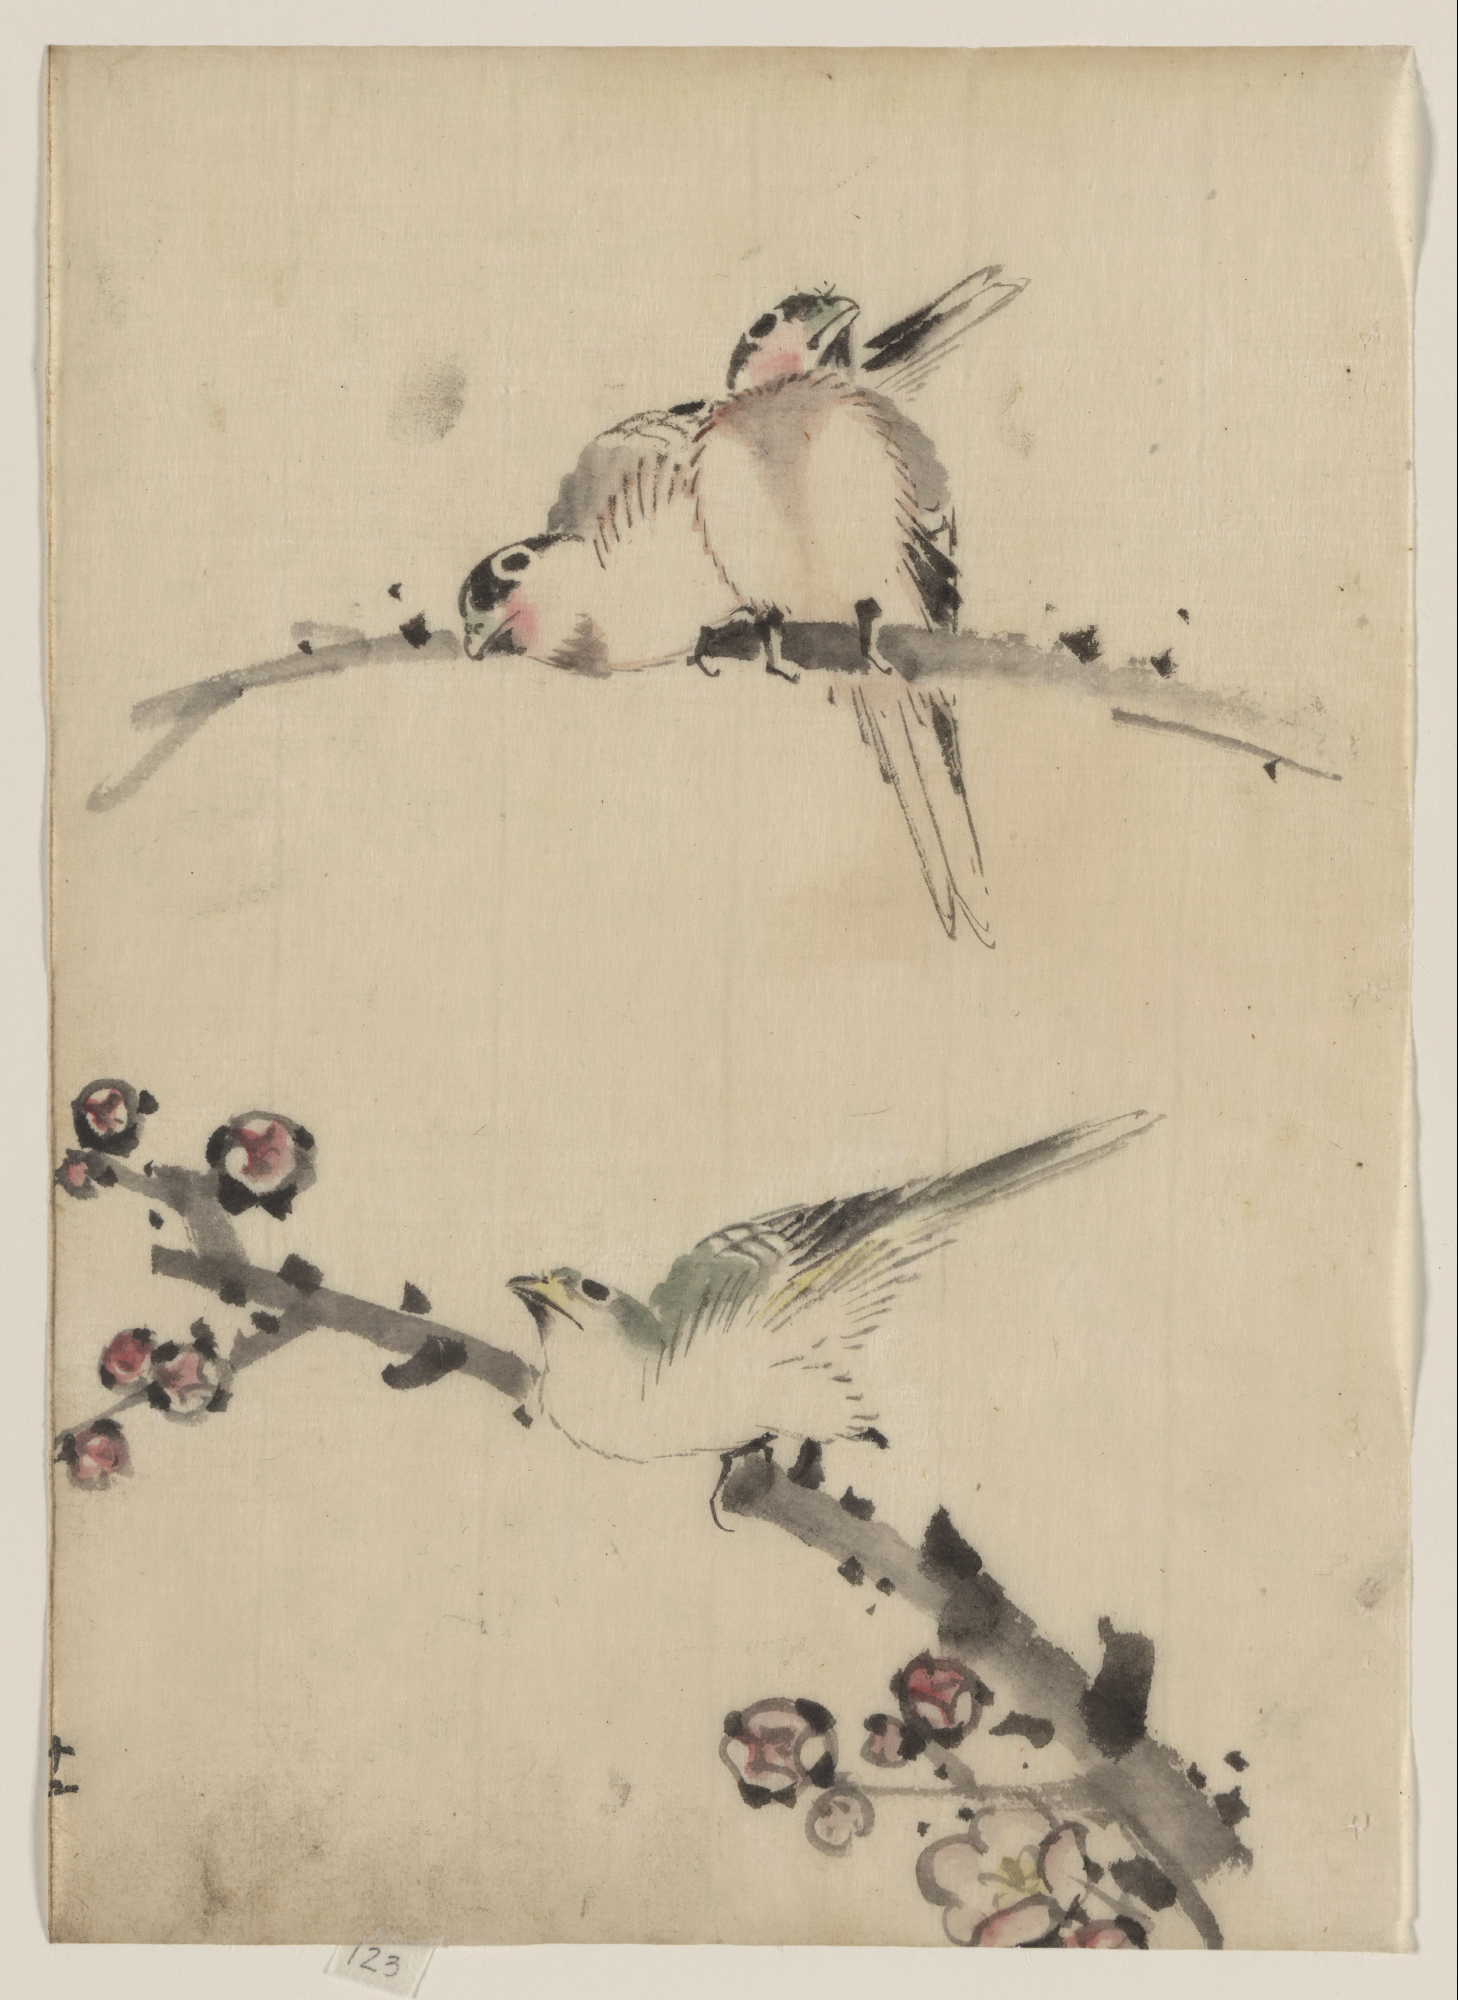 Drawn brds perched bird Perched Branches Birds Blossoms]